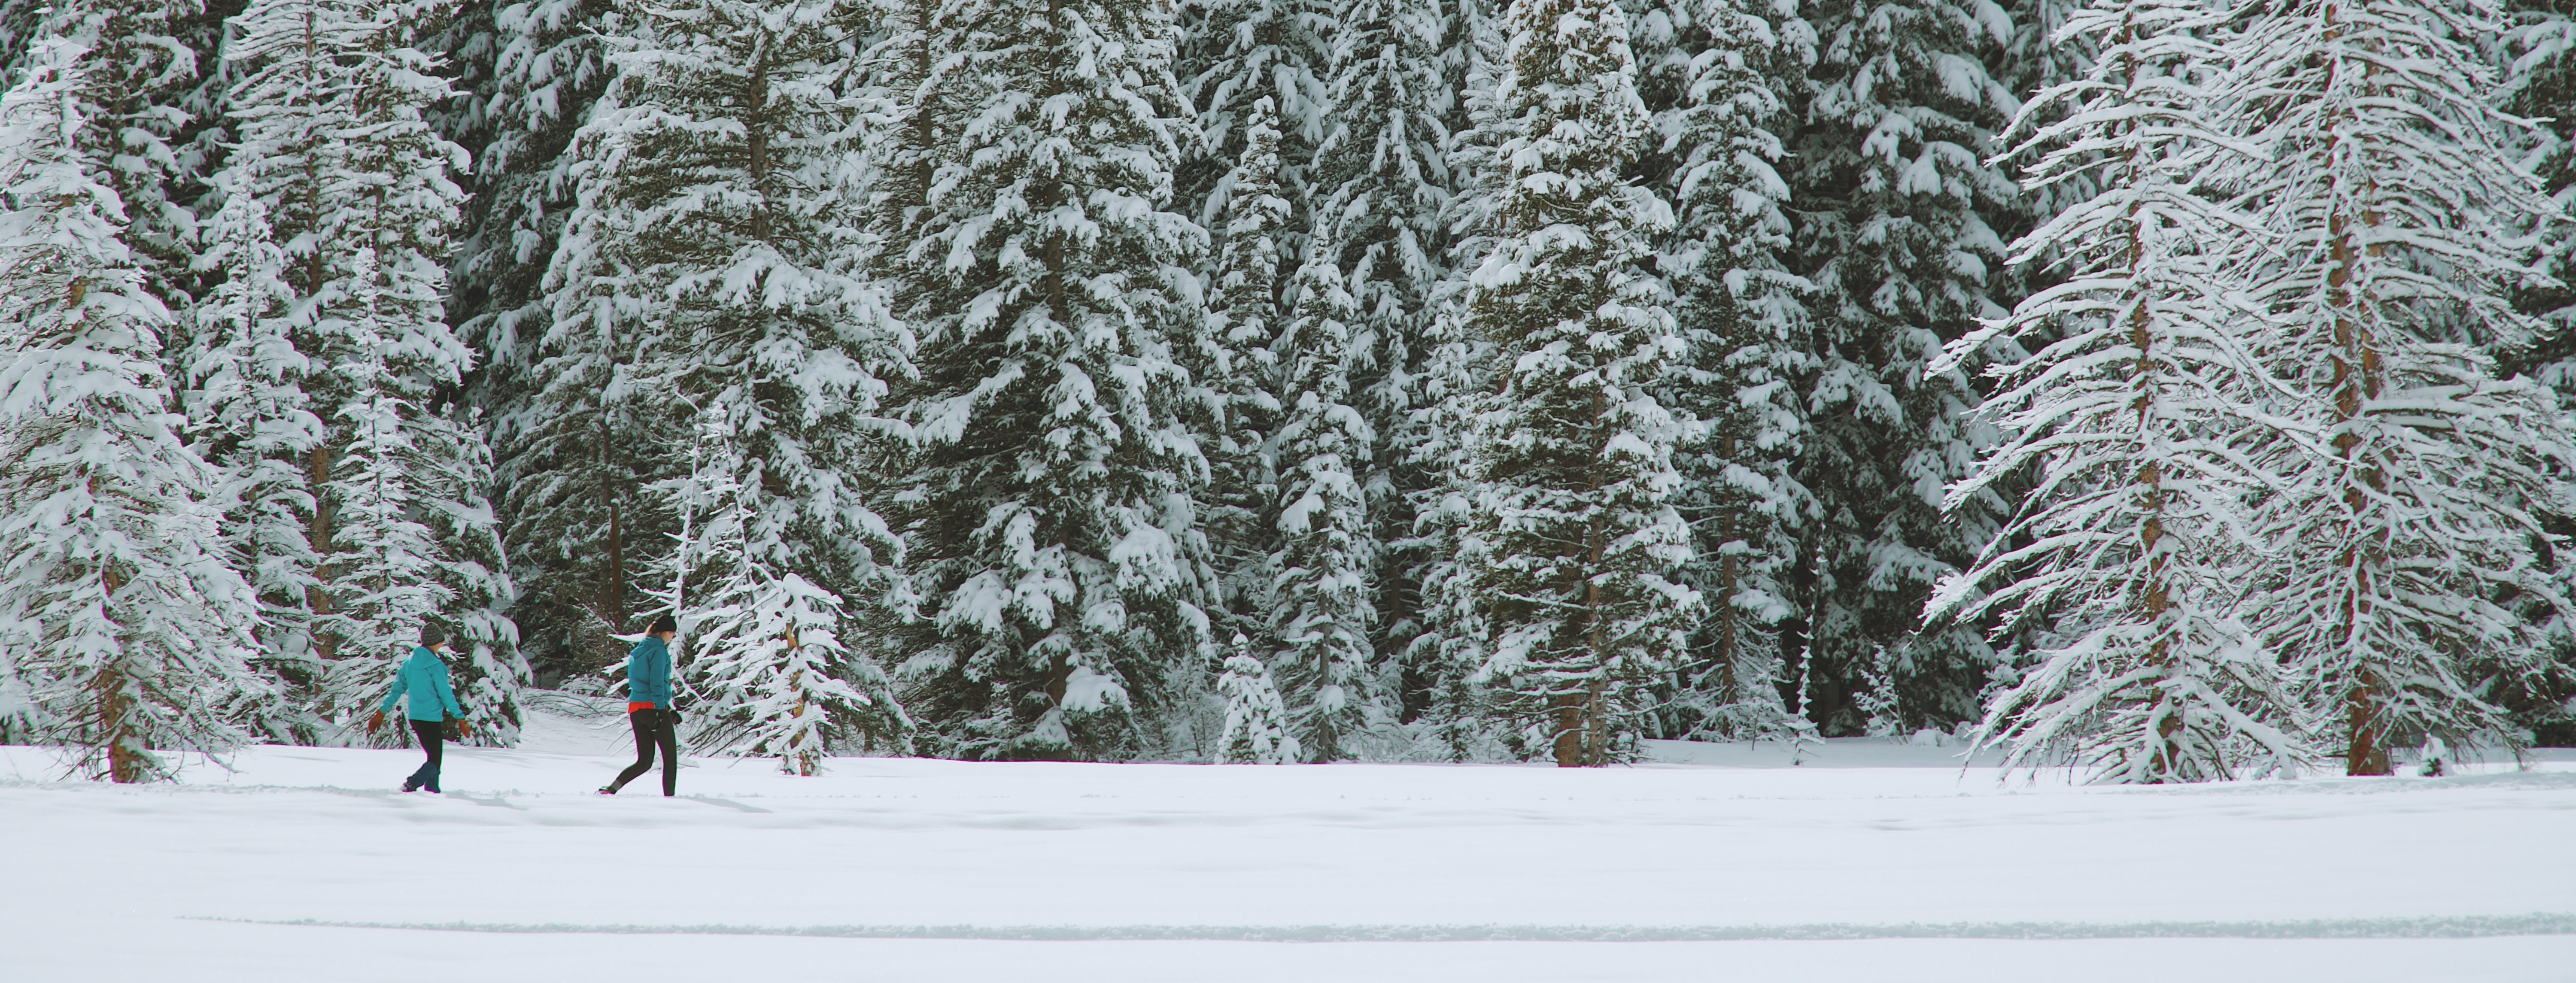 Two people in brightly coloured jackets walk through a snowy forest. Photo credit: Greg Rakozy